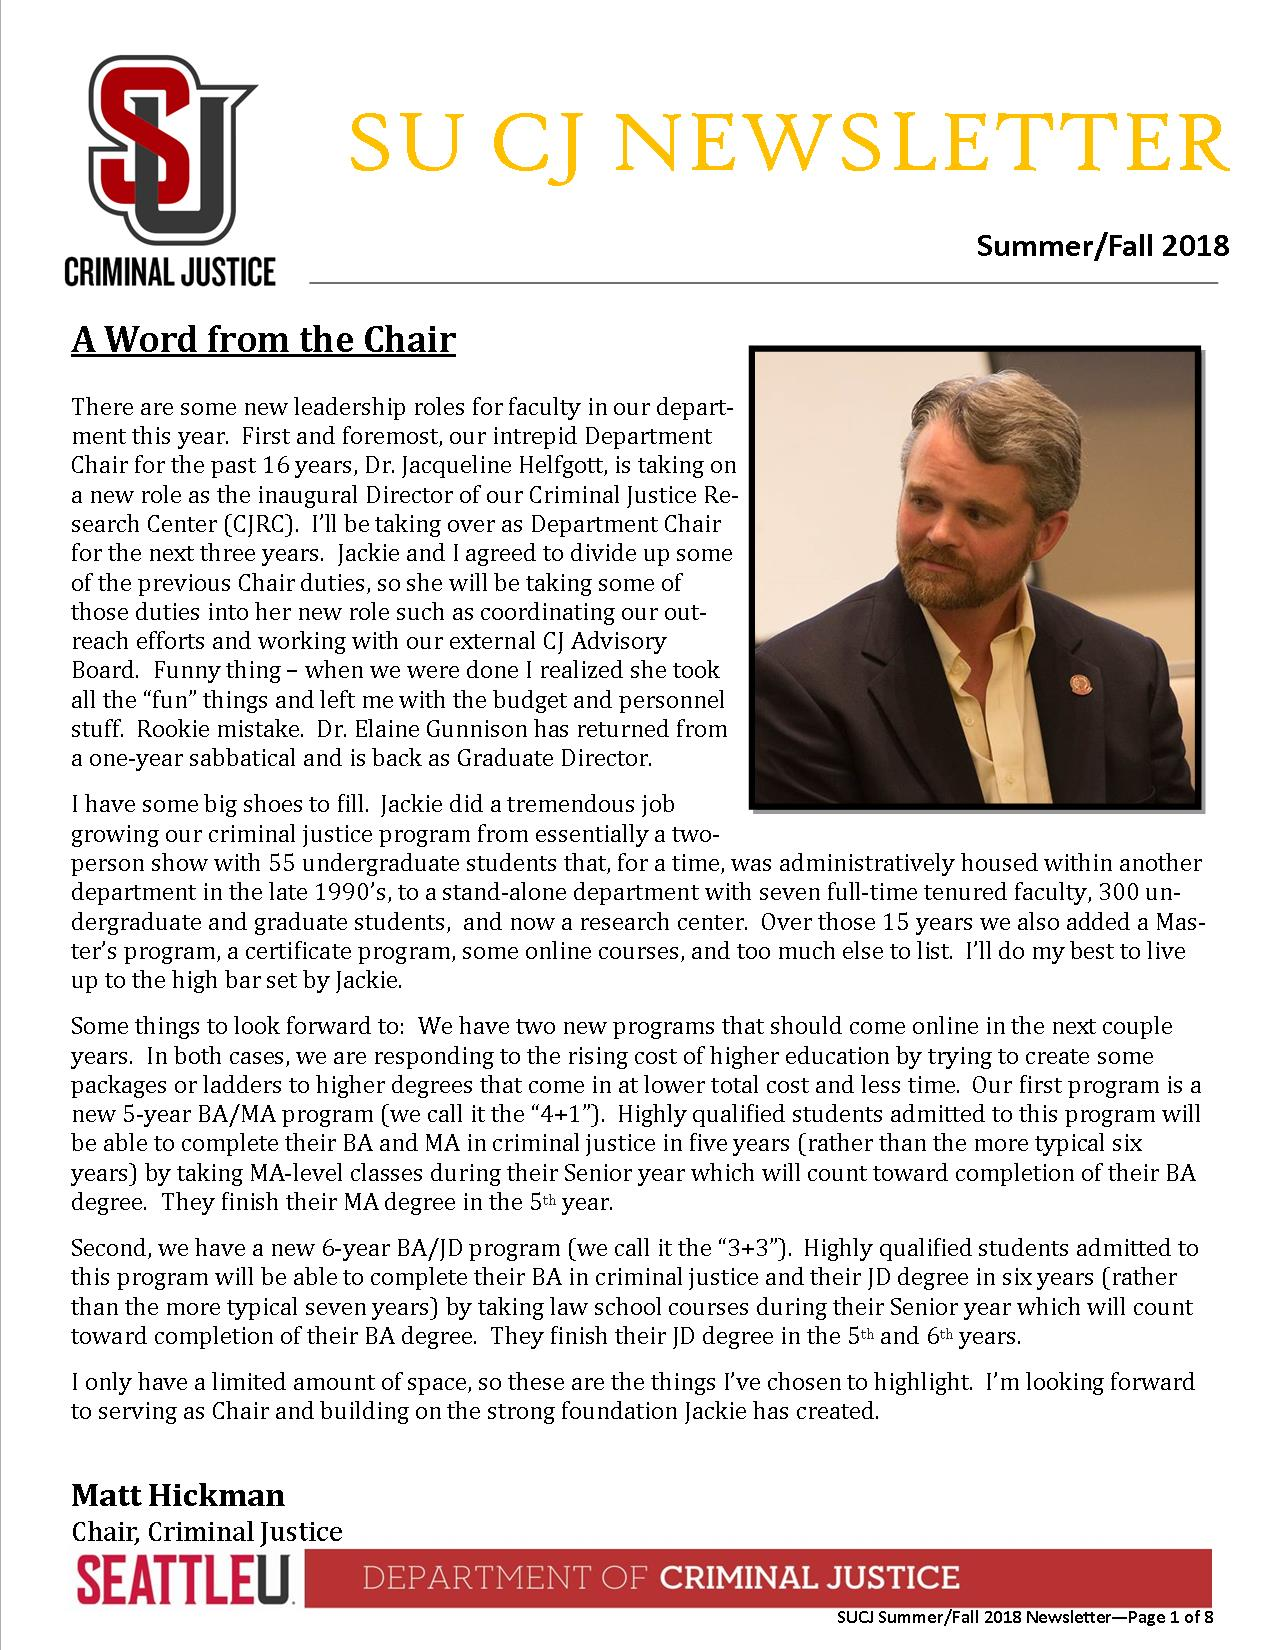 Fall 18 Newsletter Page 1